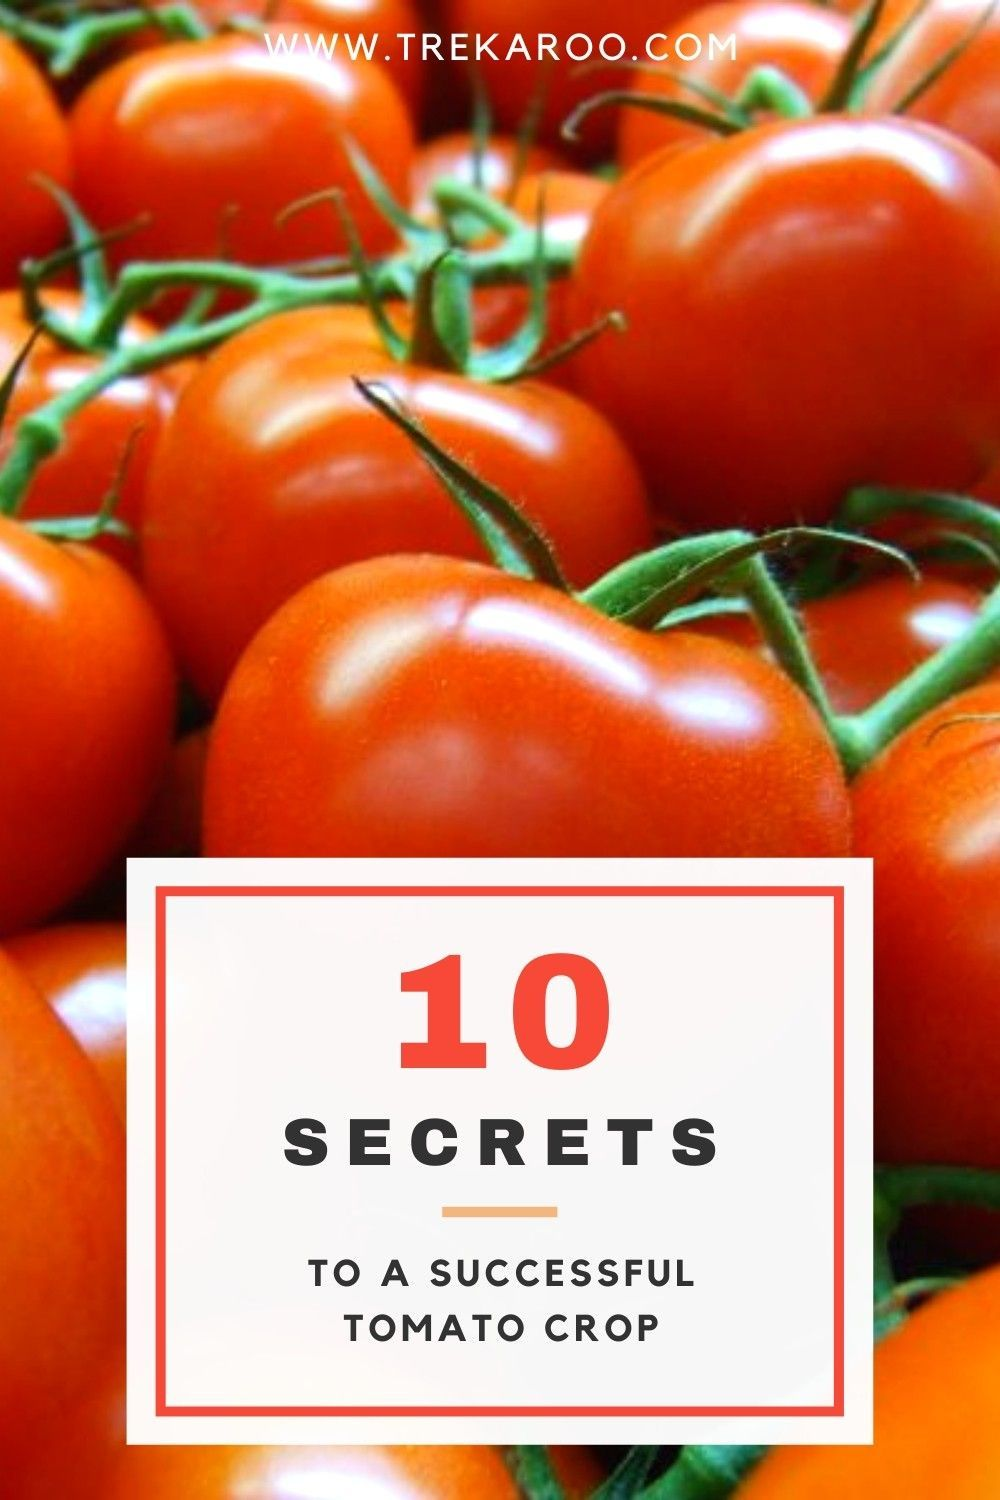 Tomato Growing Tips 10 Secrets To A Successful Tomato Crop